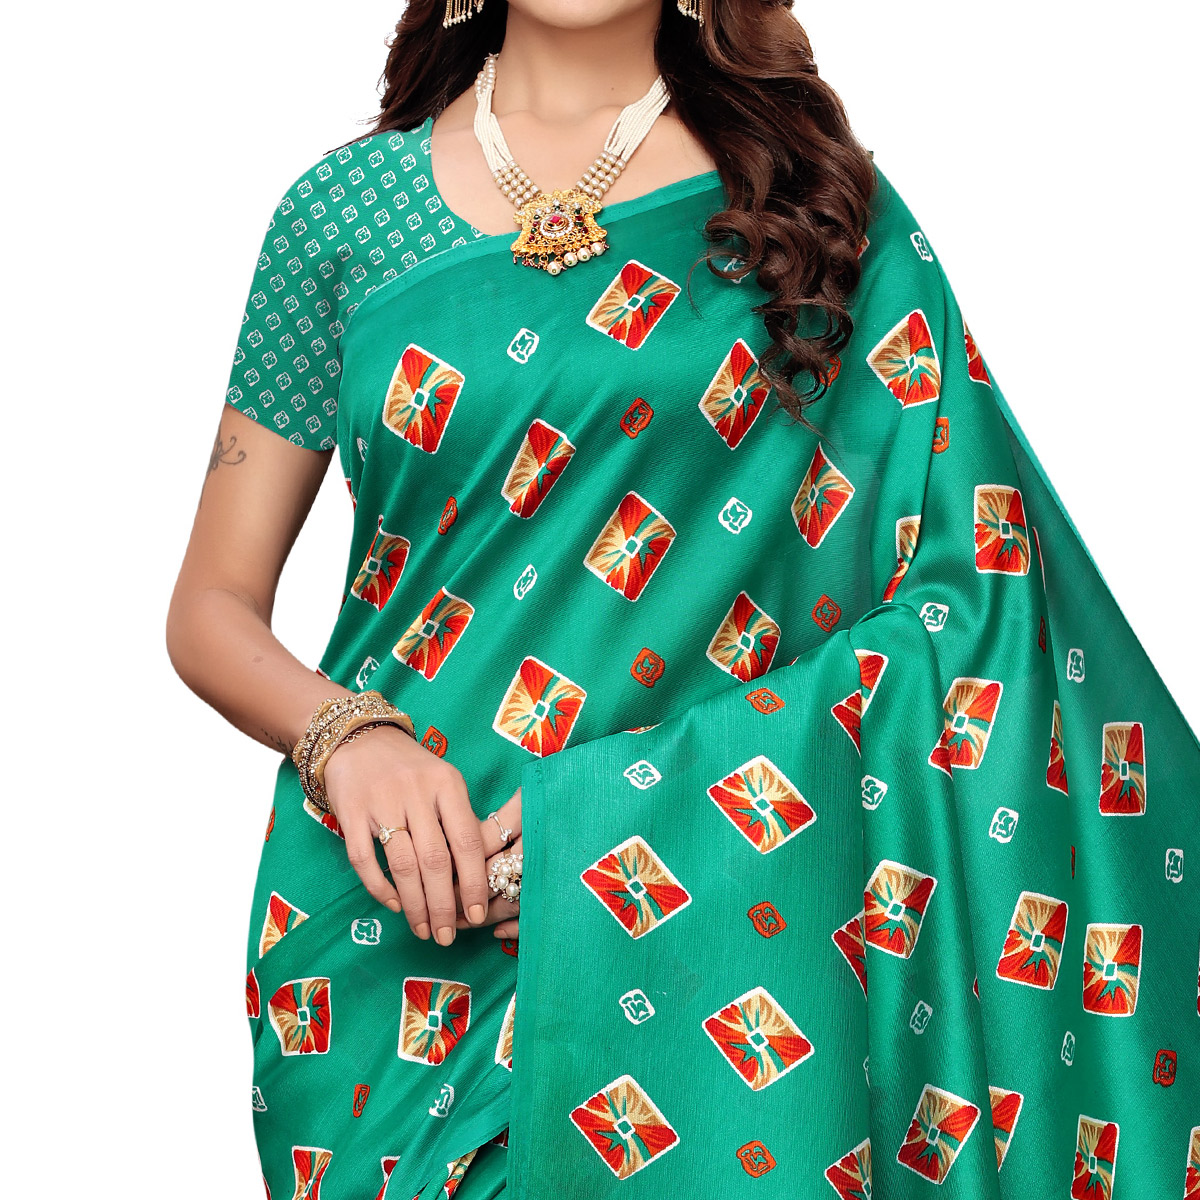 Preferable Turquoise Green Colored Casual Printed Mysore Art Silk Saree